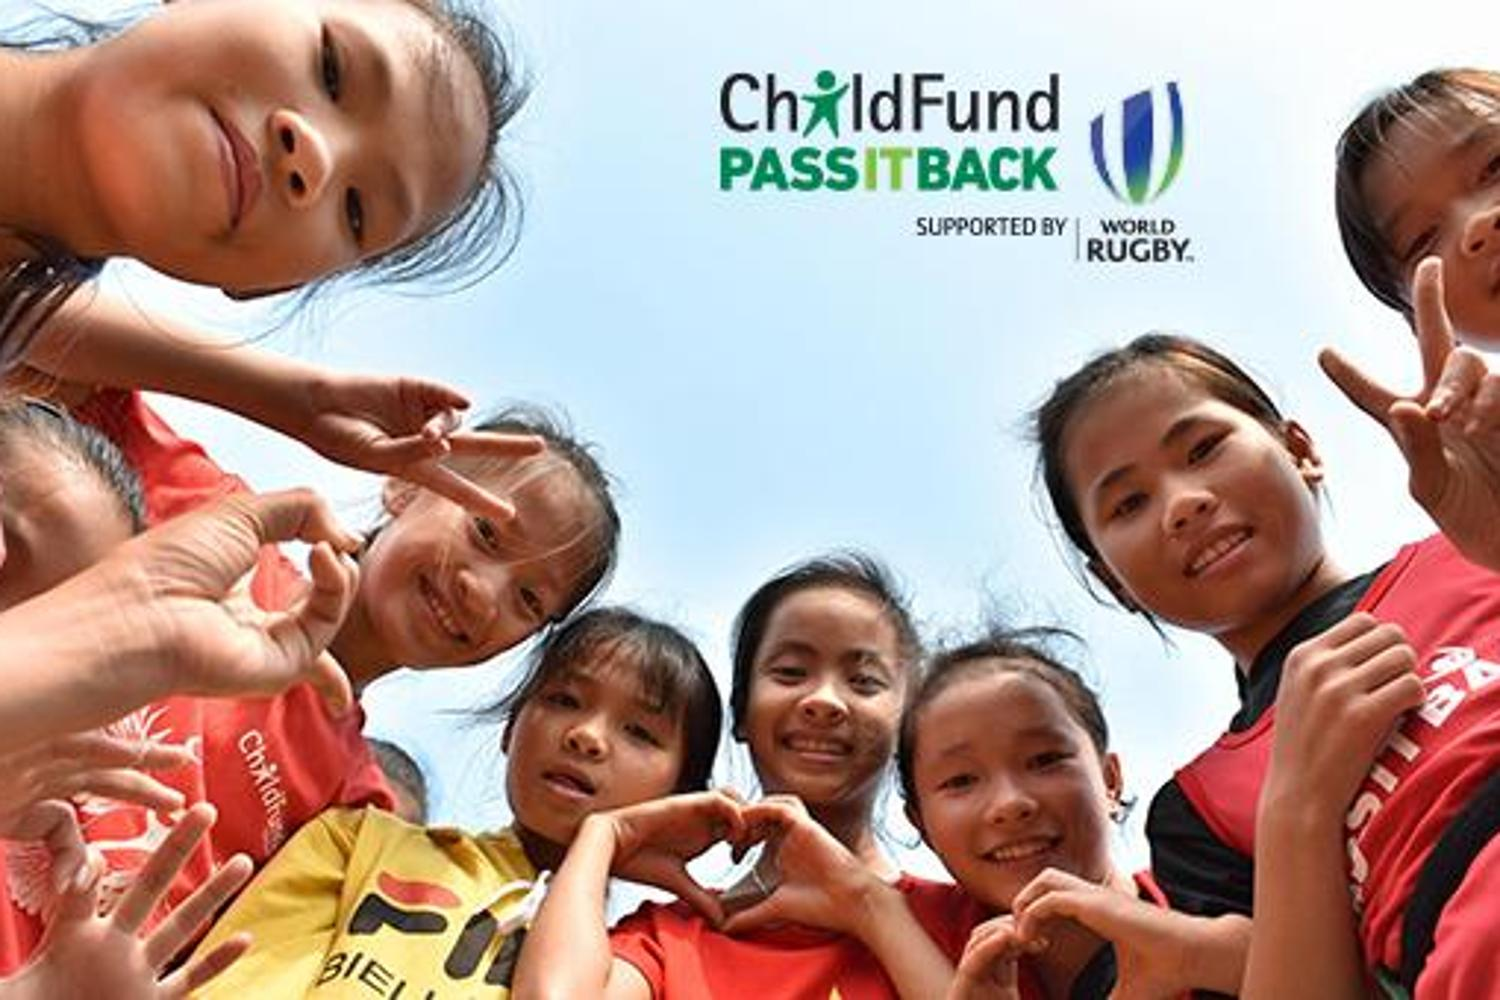 ChildFund Pass It Back Launch - branded photo